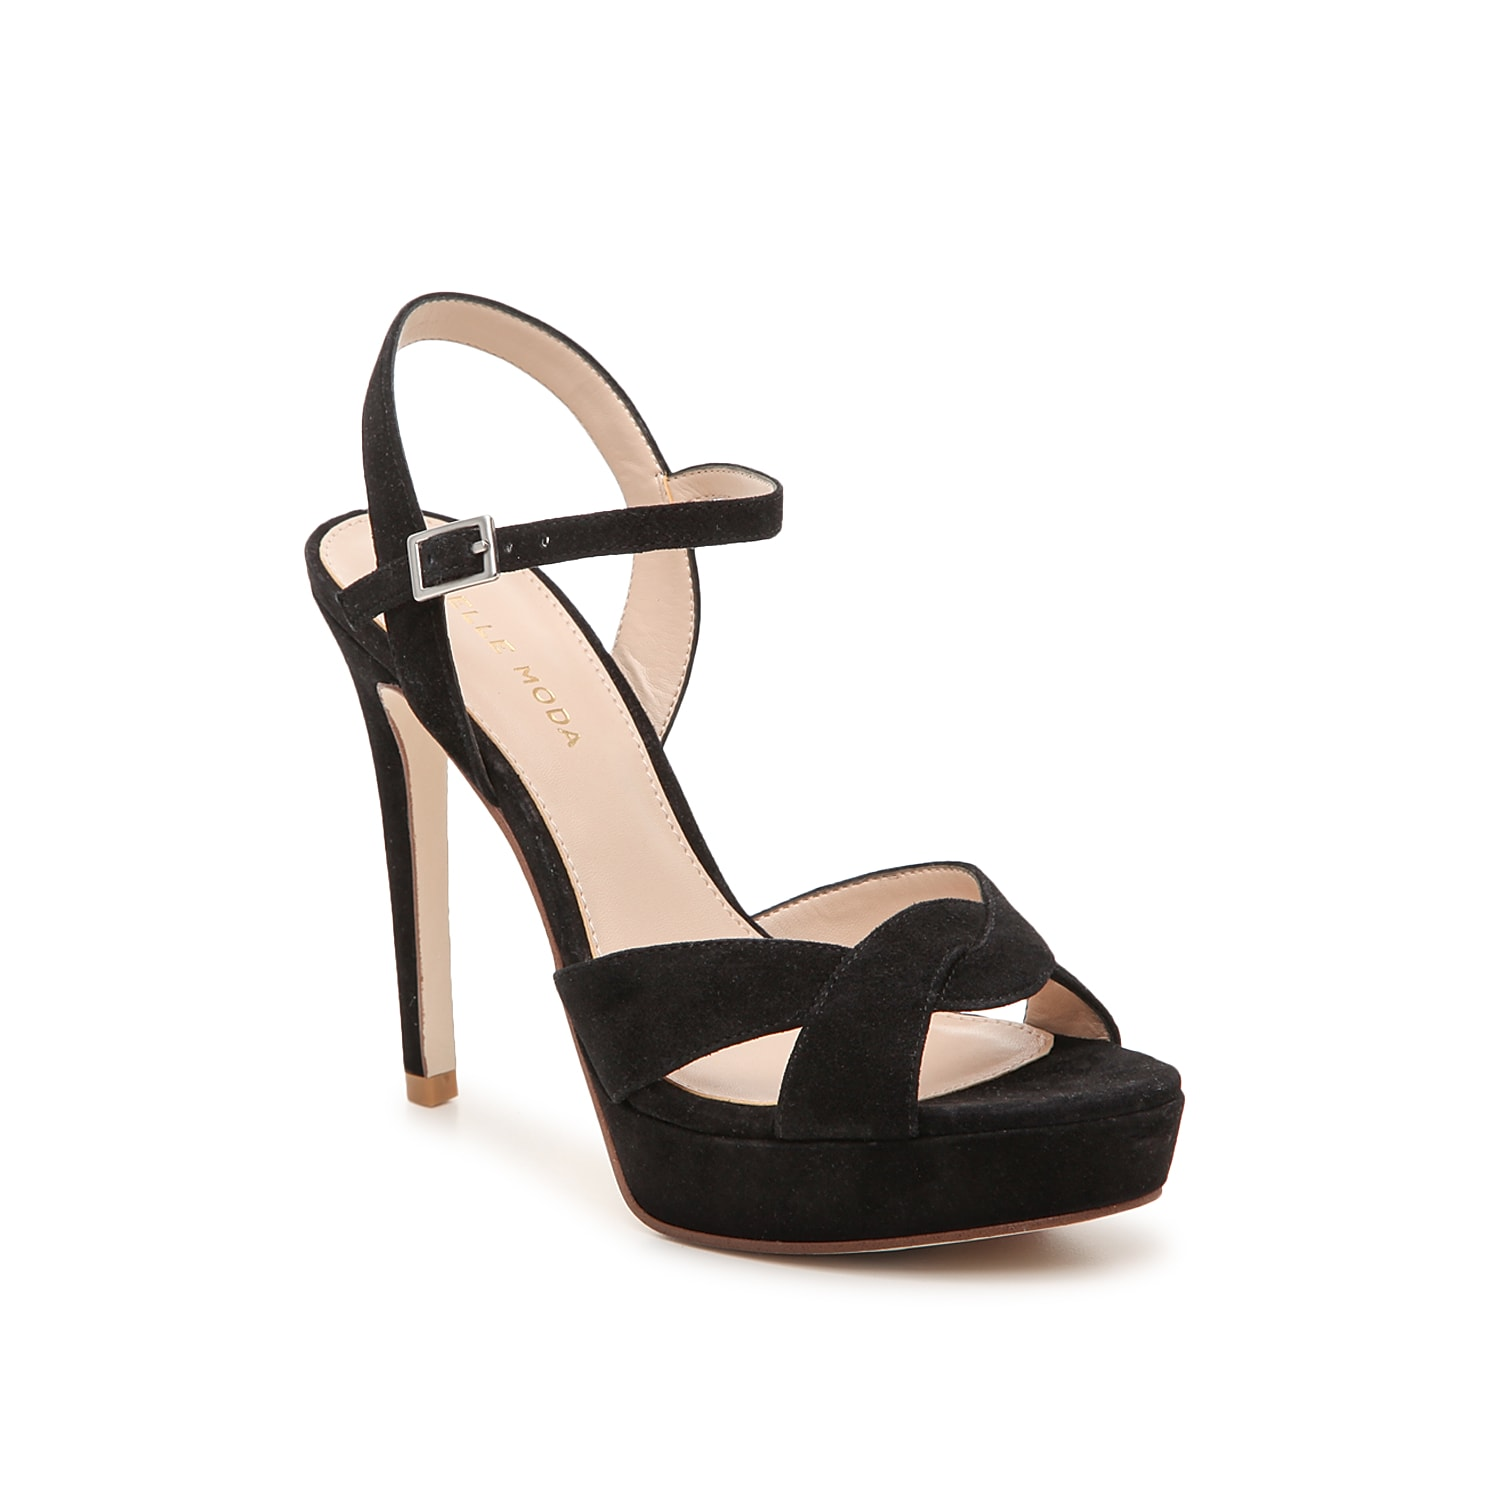 Reach new heights in the Danielle platform sandal from Pelle Moda. This silhouette is fashioned with soft suede upper and a braided toe strap for extra allure!